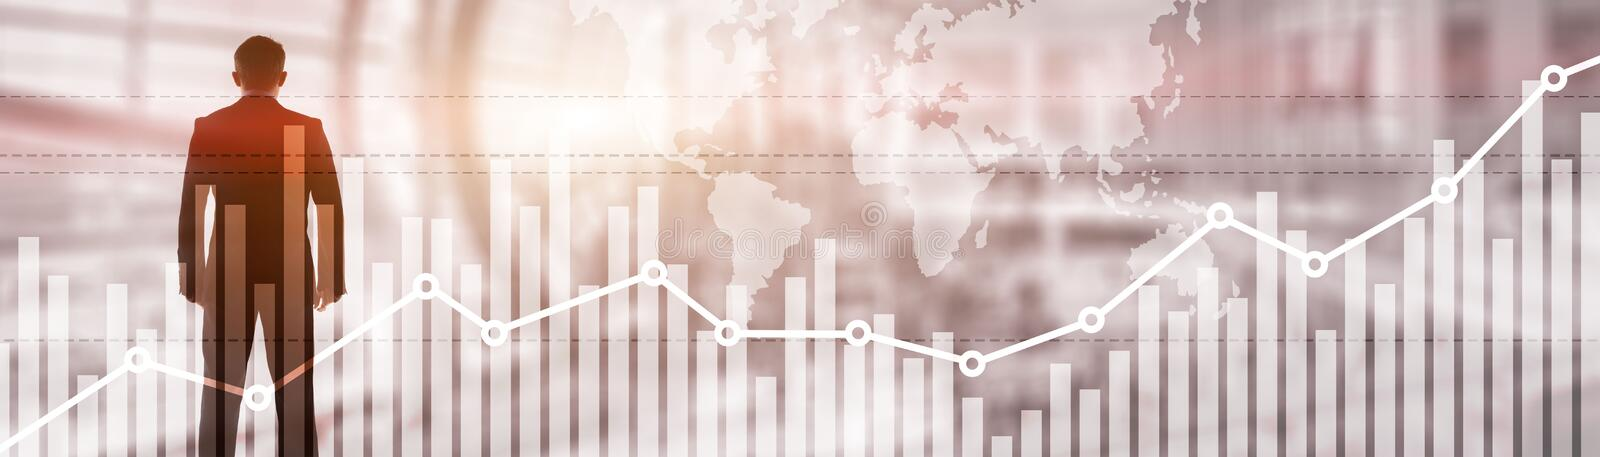 Double exposure global world map on business financial stock market trading background.  royalty free stock photography